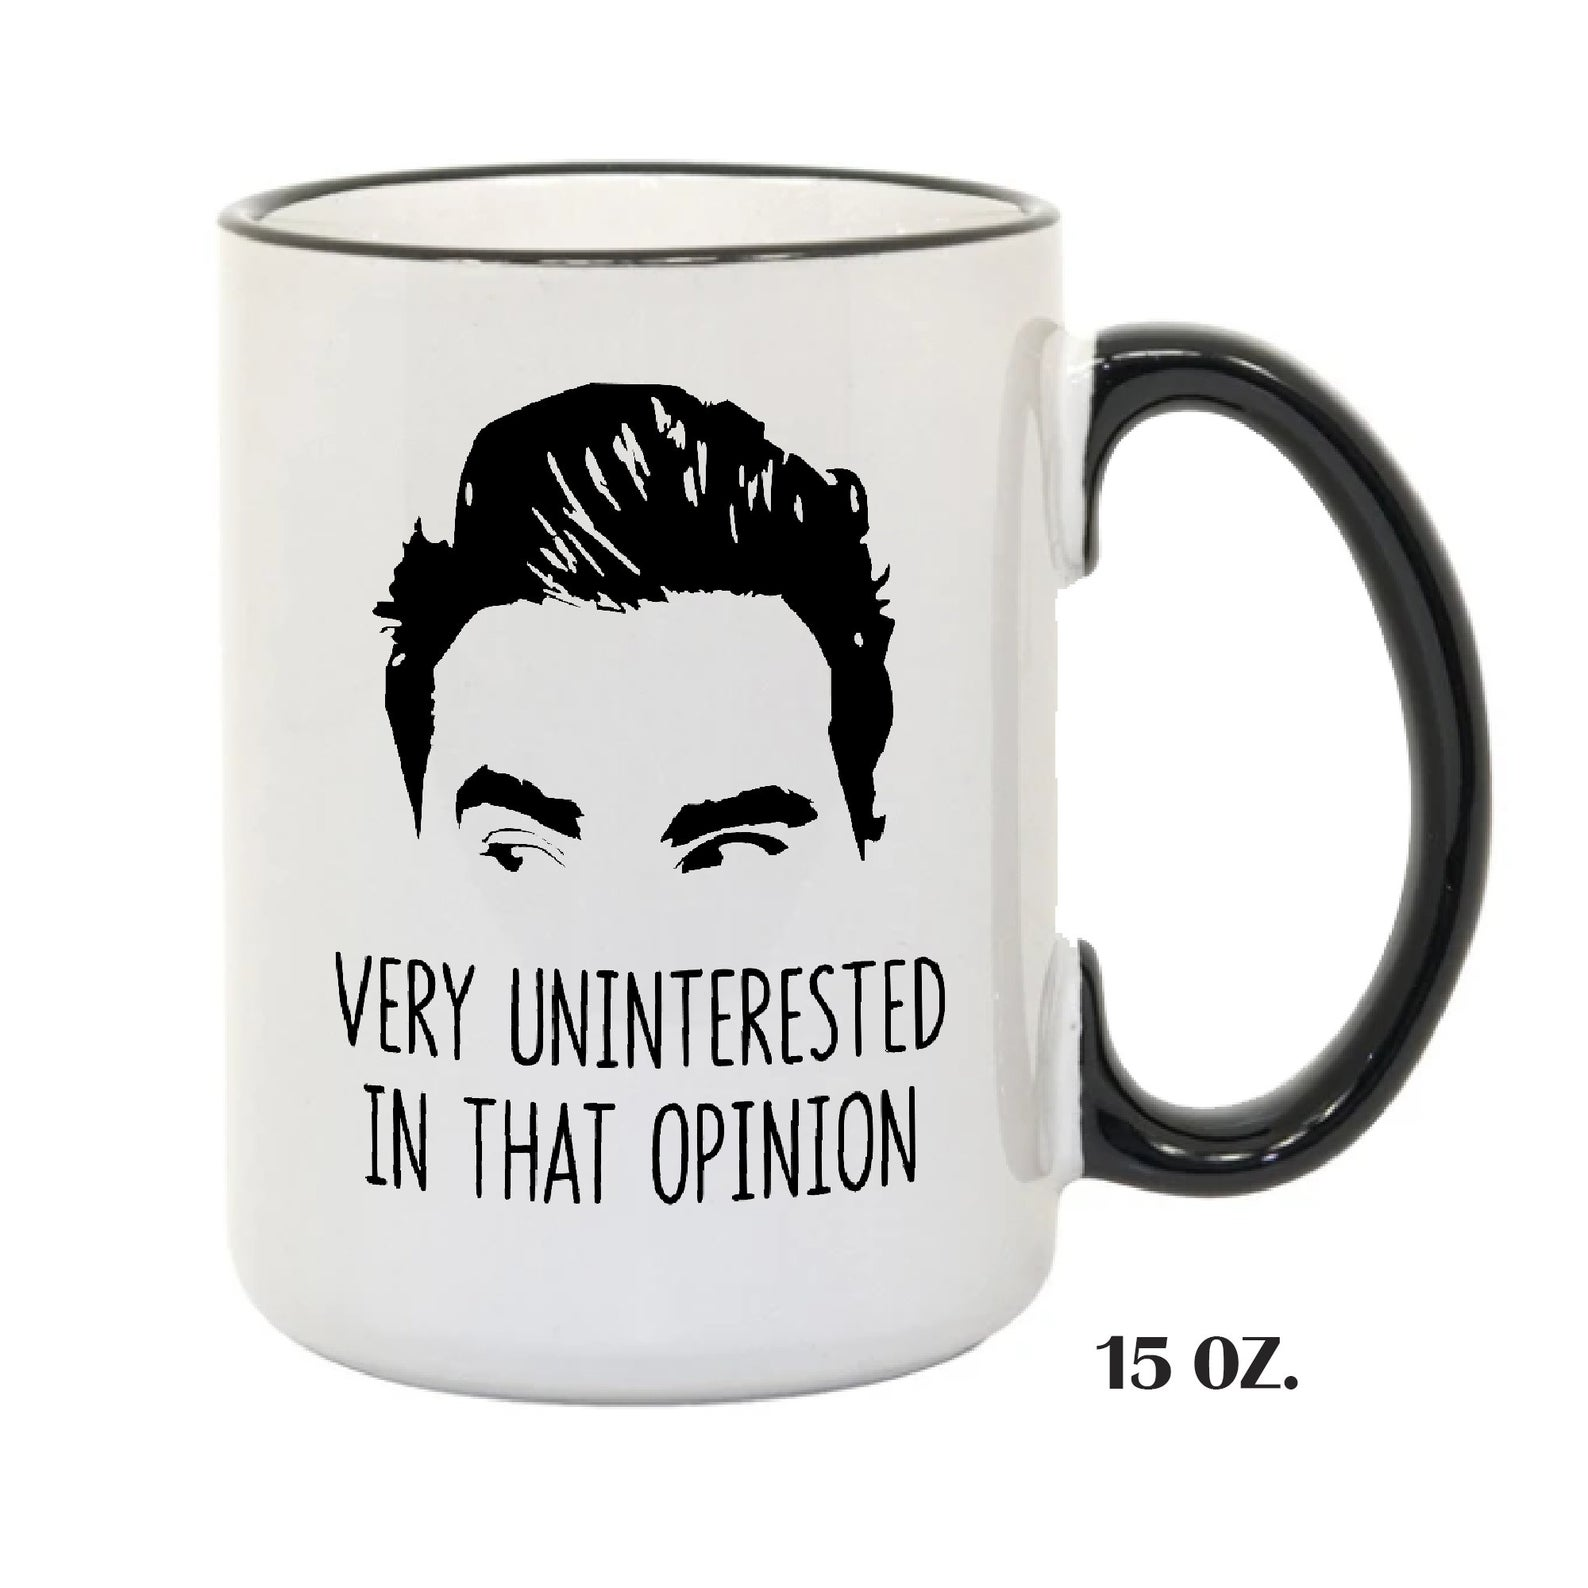 Schitts Creek Gifts - Birthday Card - Uninterested in that Opinion Mug